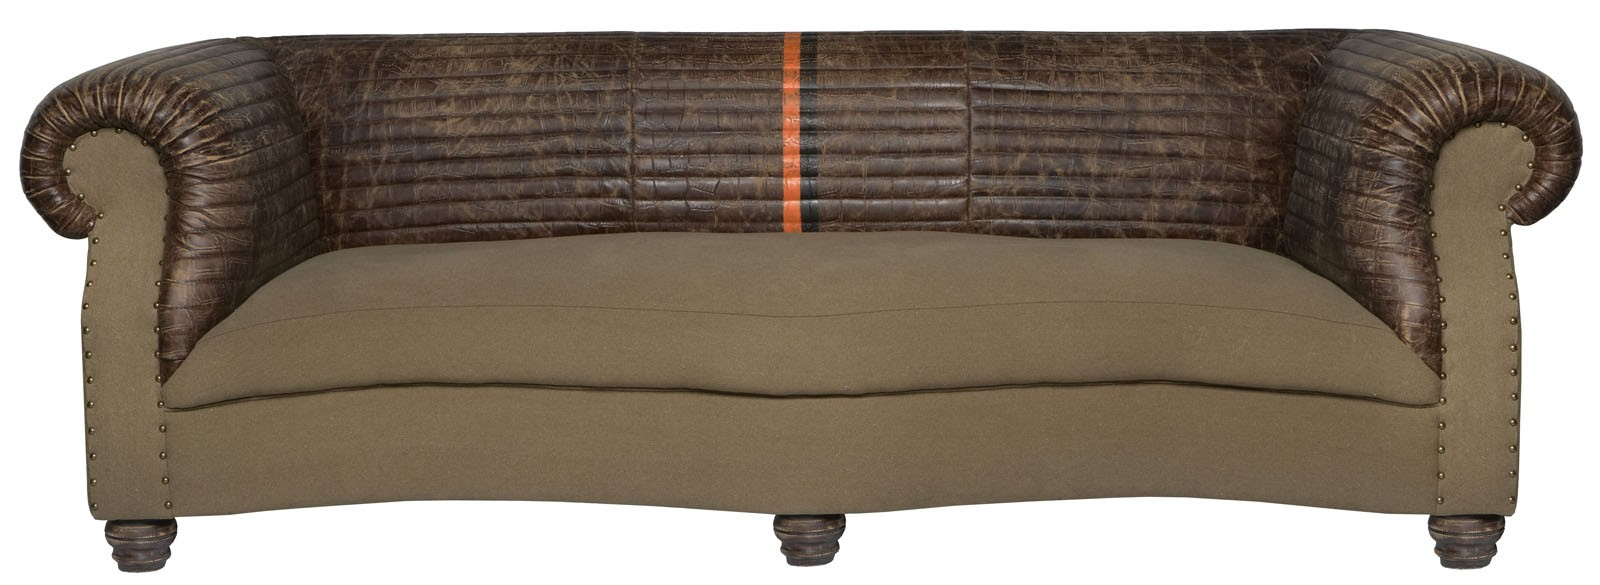 the is a picture of the andrew martin serpentine sofa